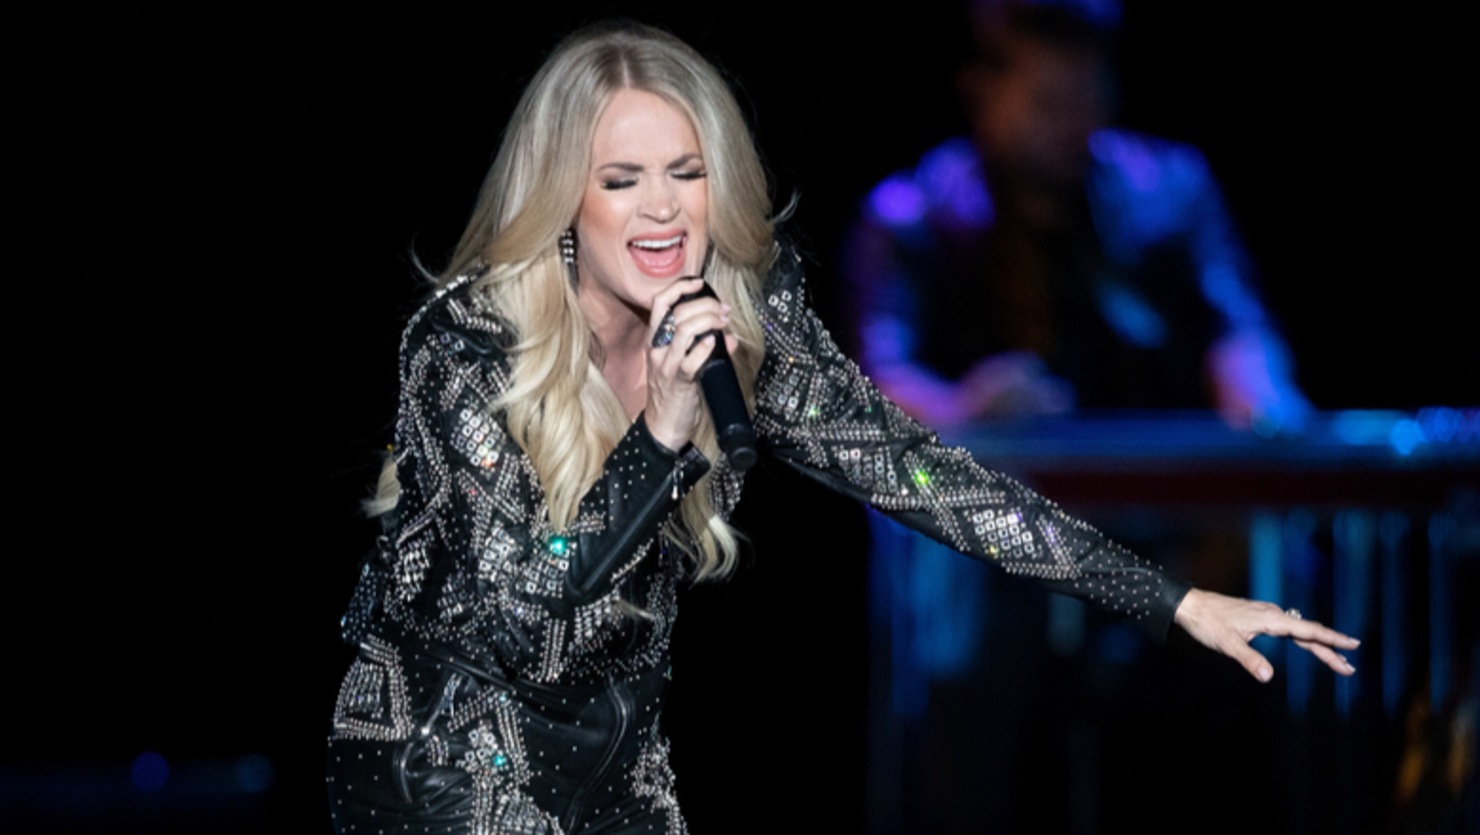 Carrie Underwood Invites Talented Fan Onstage To Rap With Her